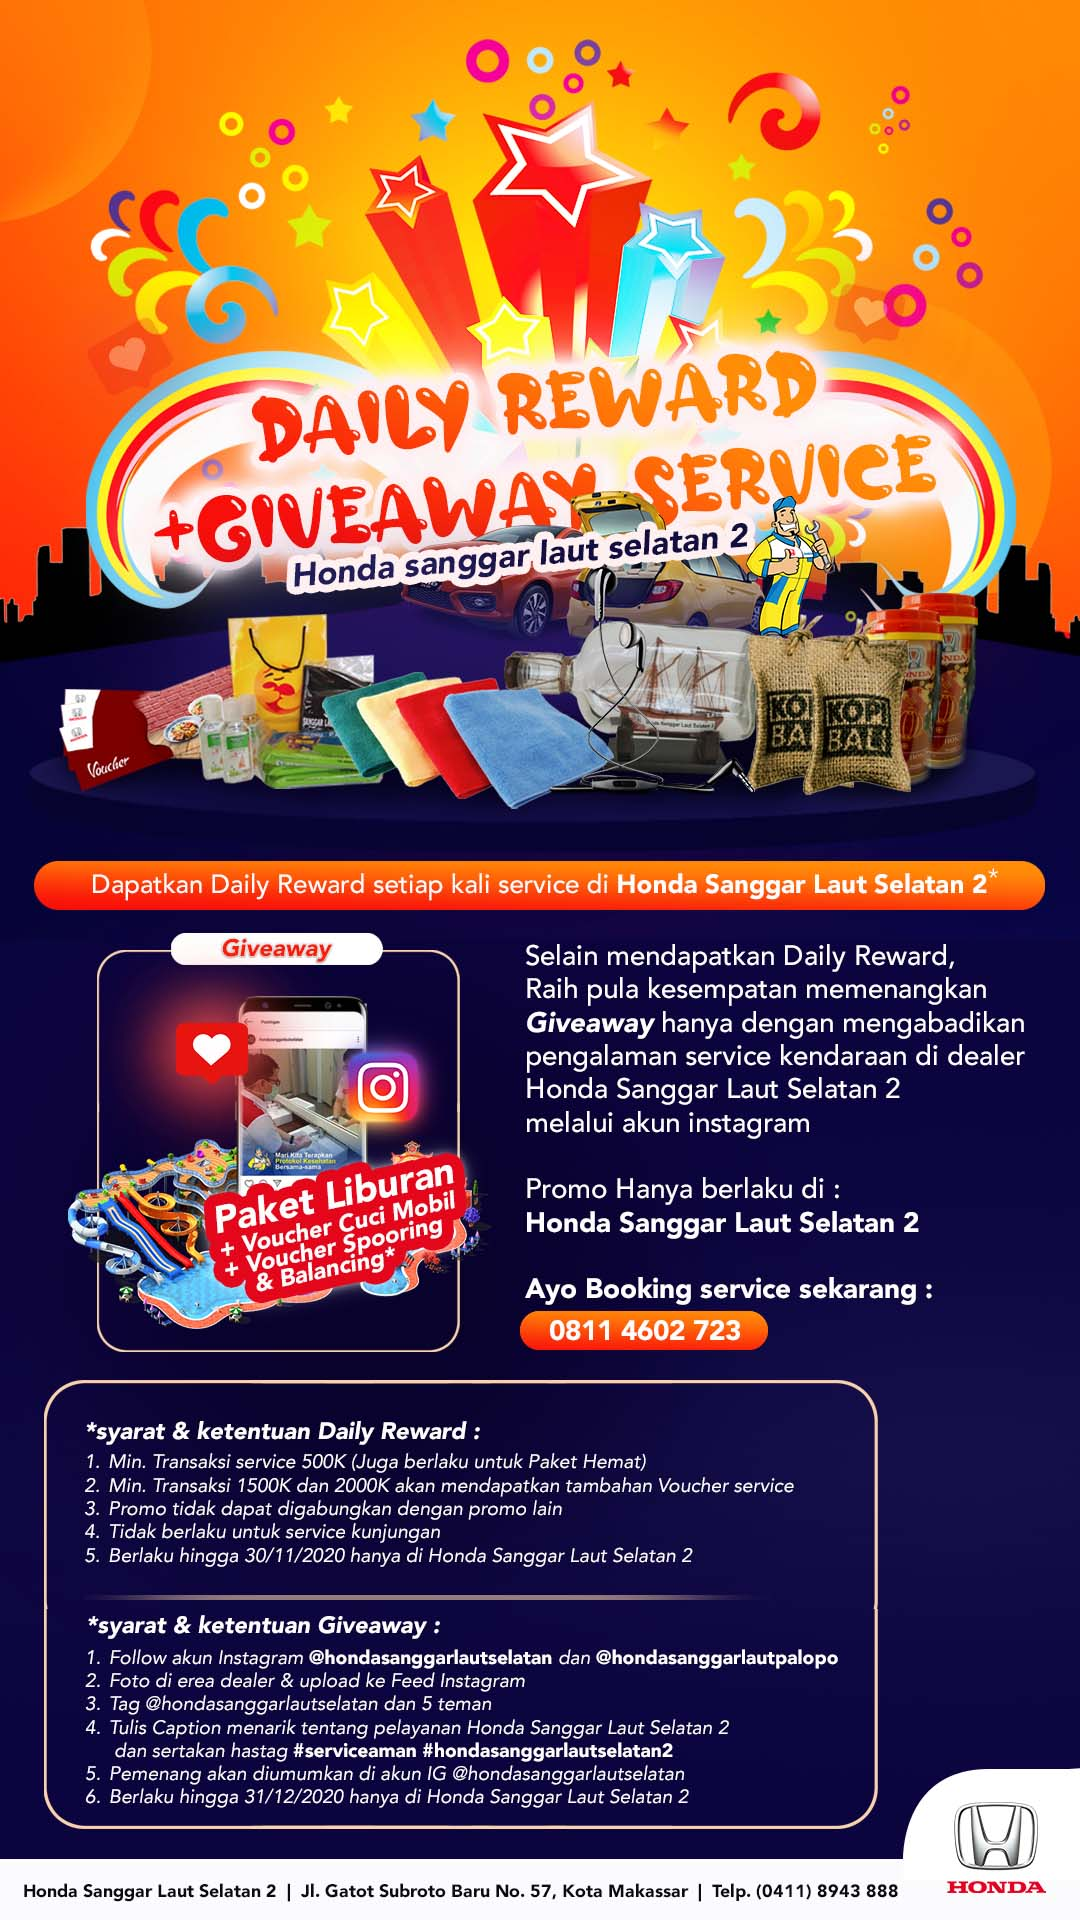 Promo Daily Reward dan Giveaway Service